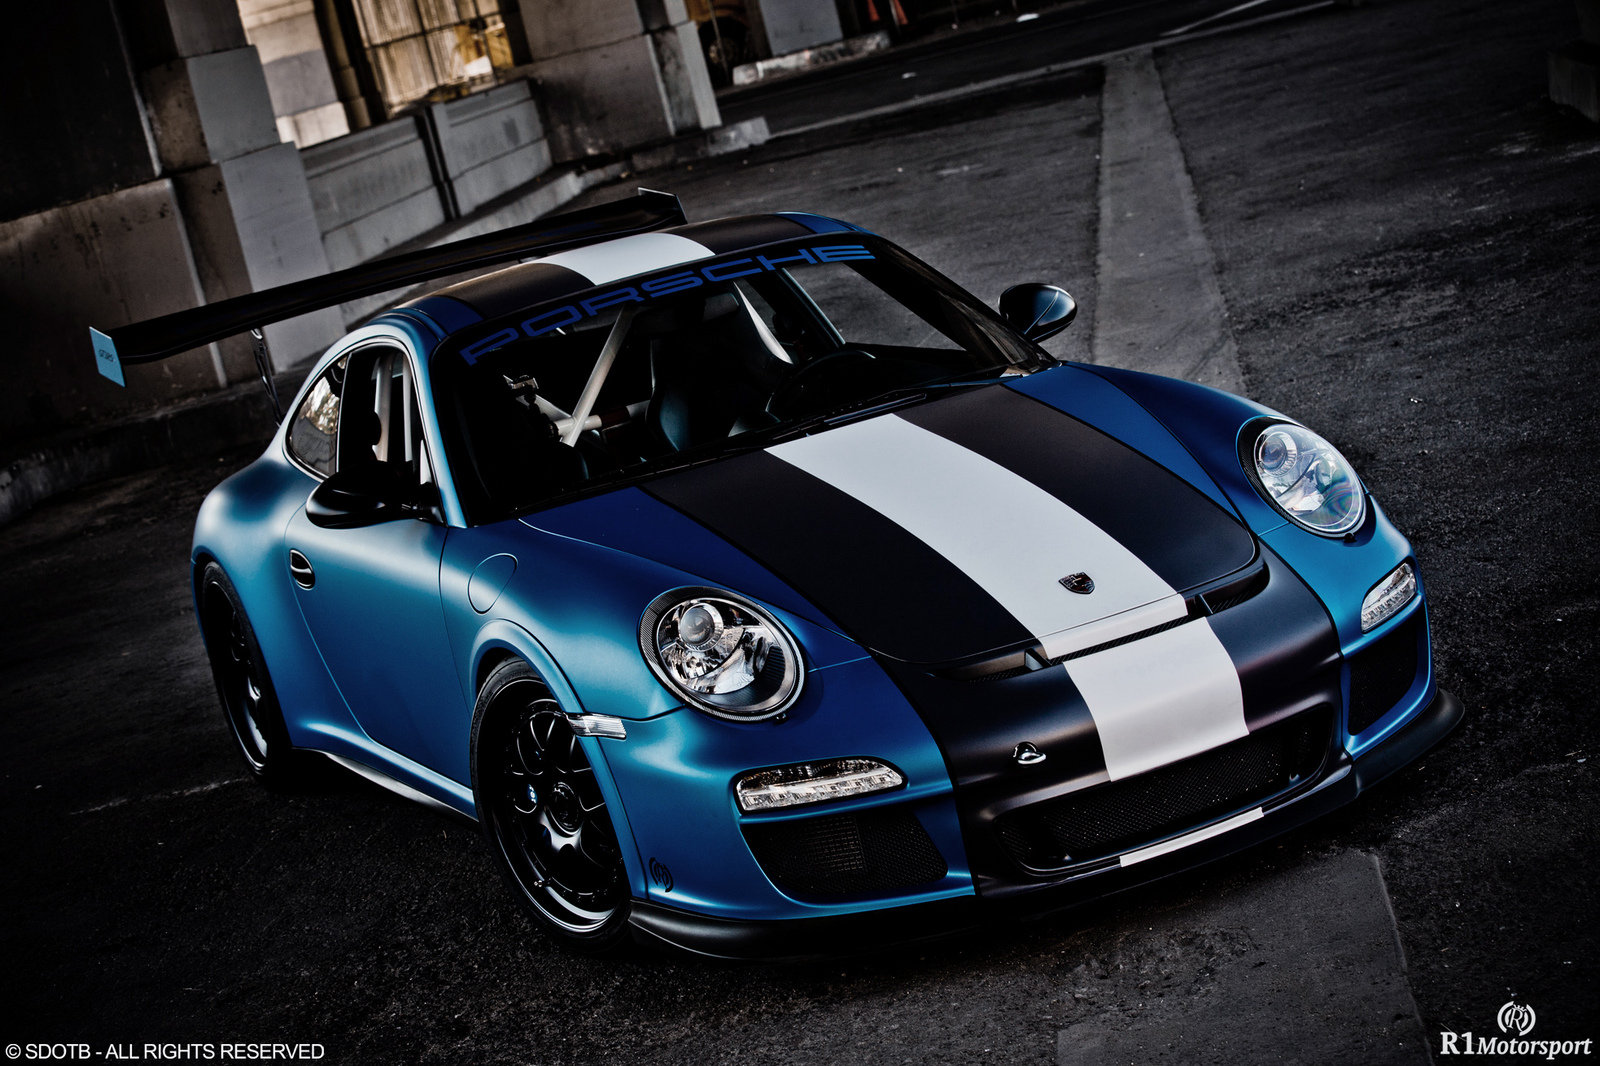 2012 Porsche Gt3 Rs Satin Blue By Royal Muffler Top Speed